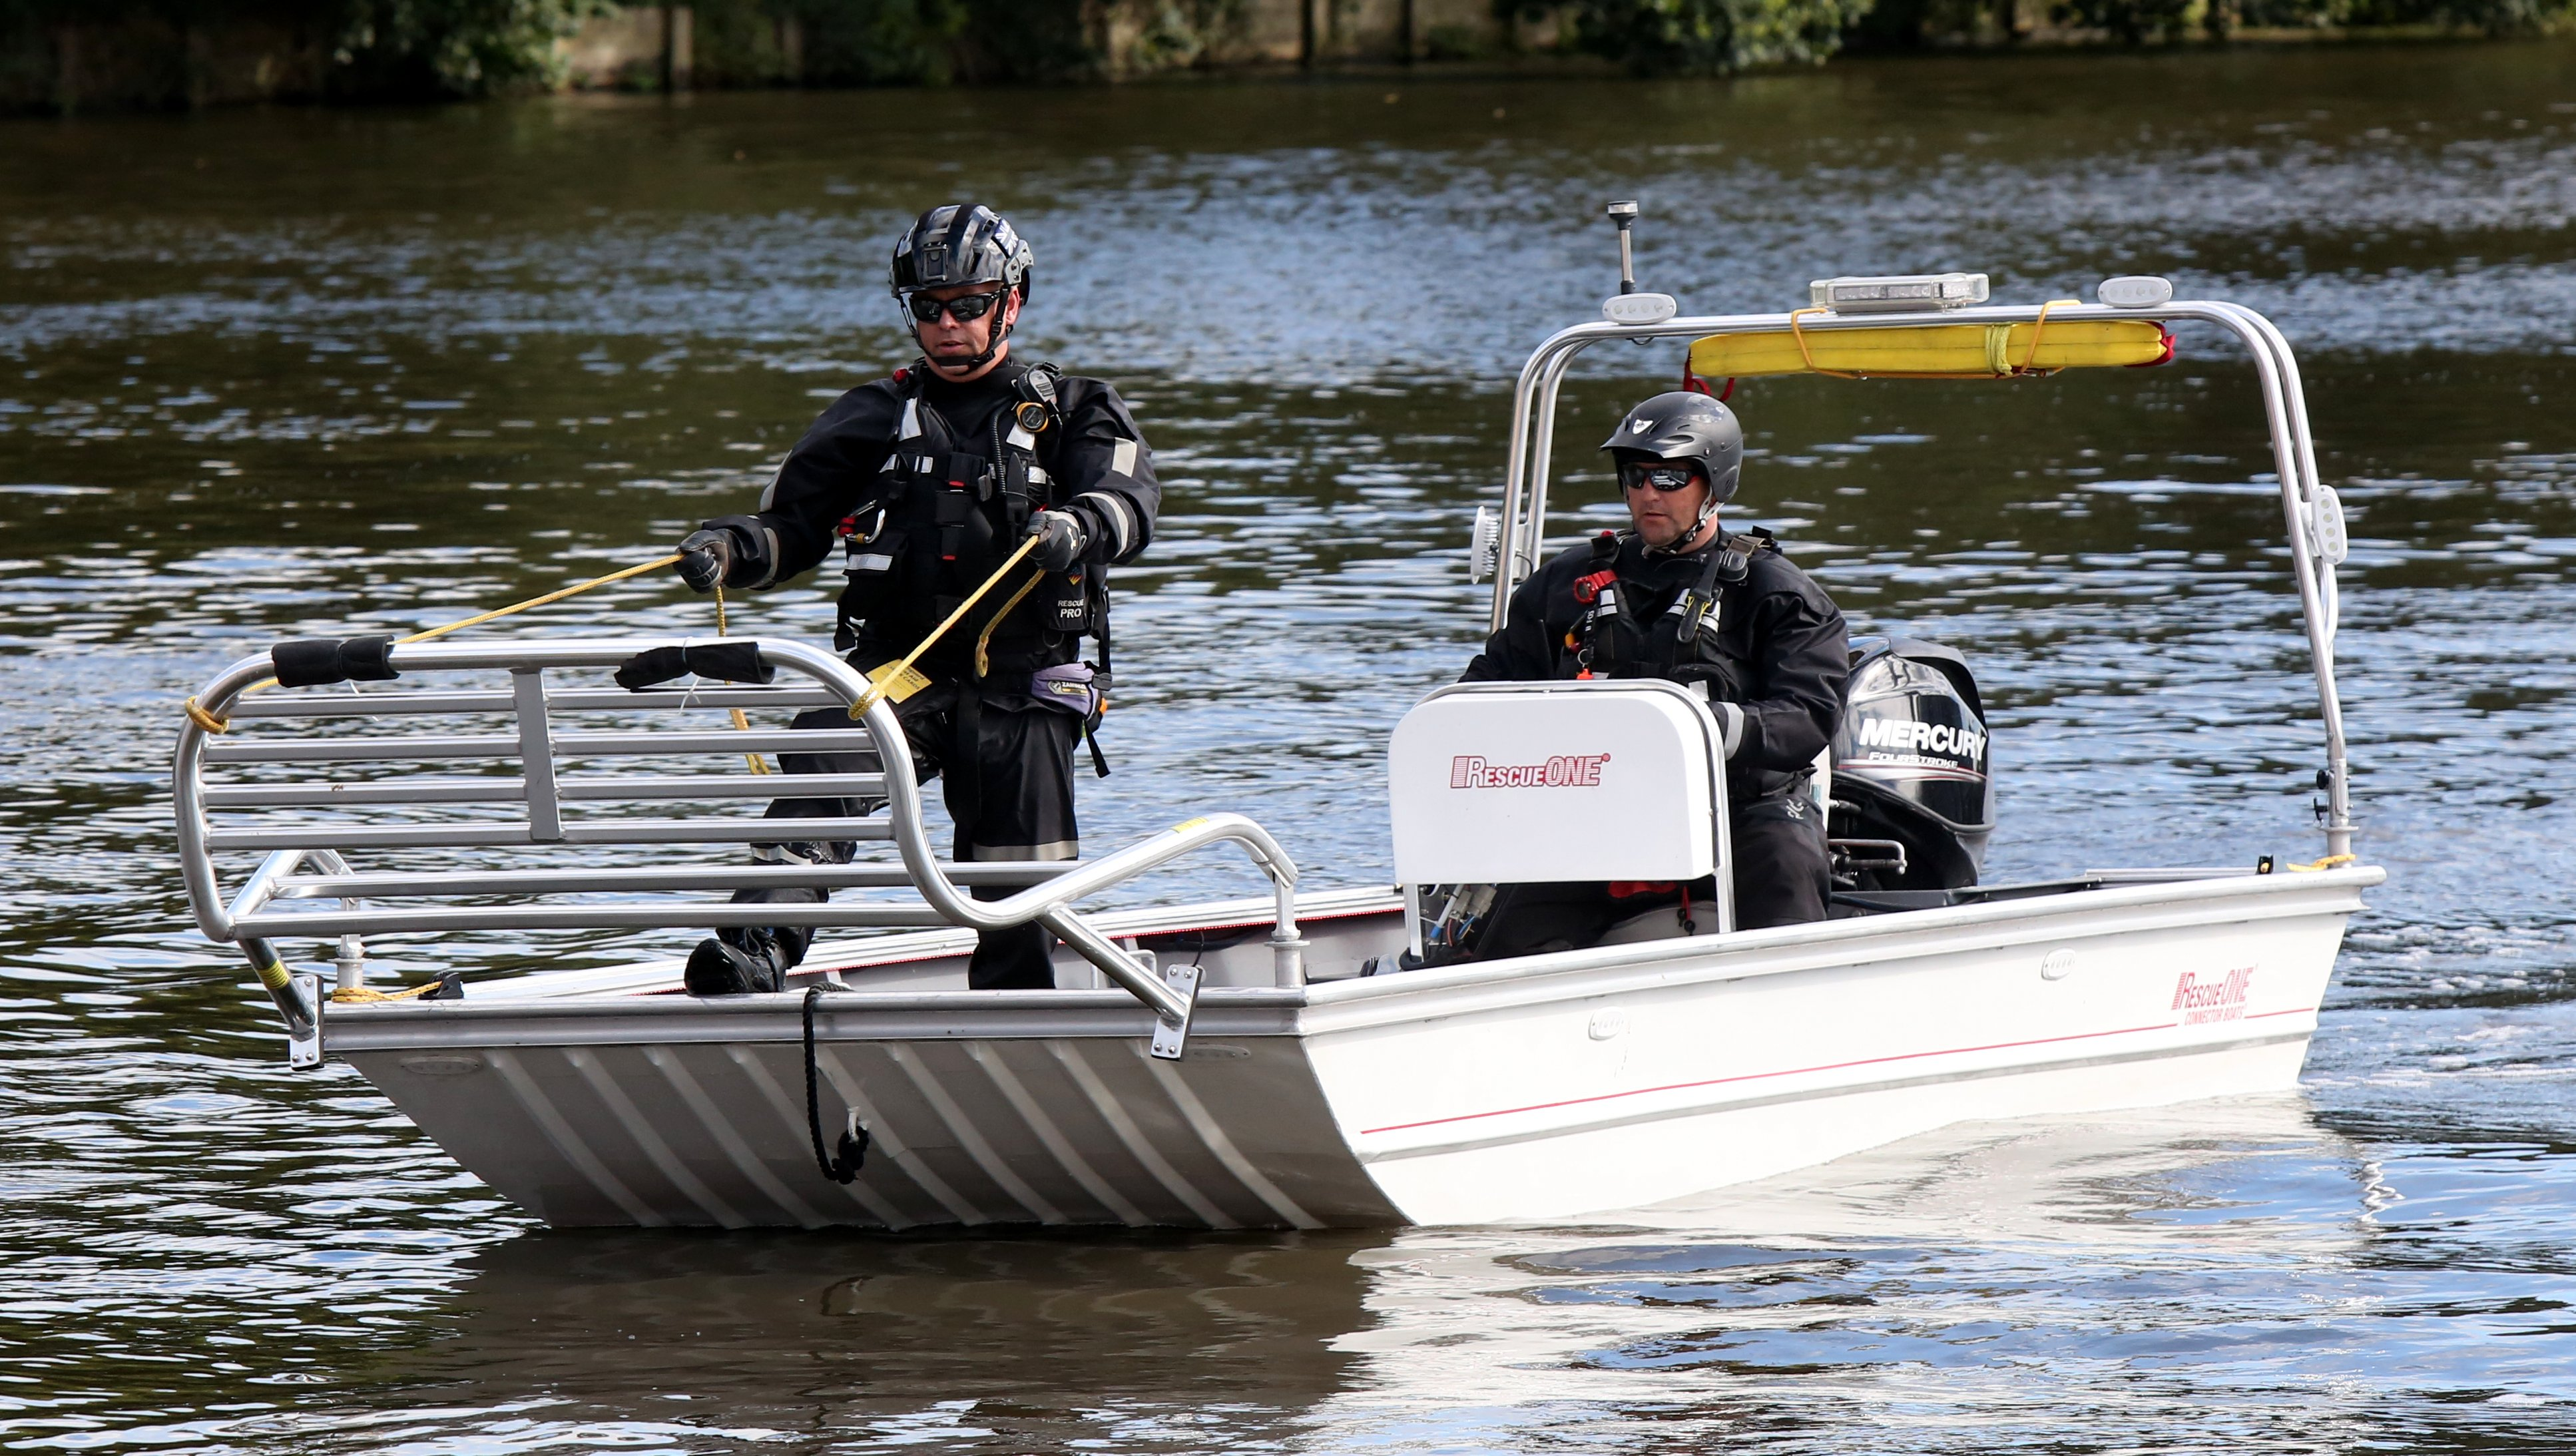 Waterborne SAR Demos will take place at The Emergency Services Show